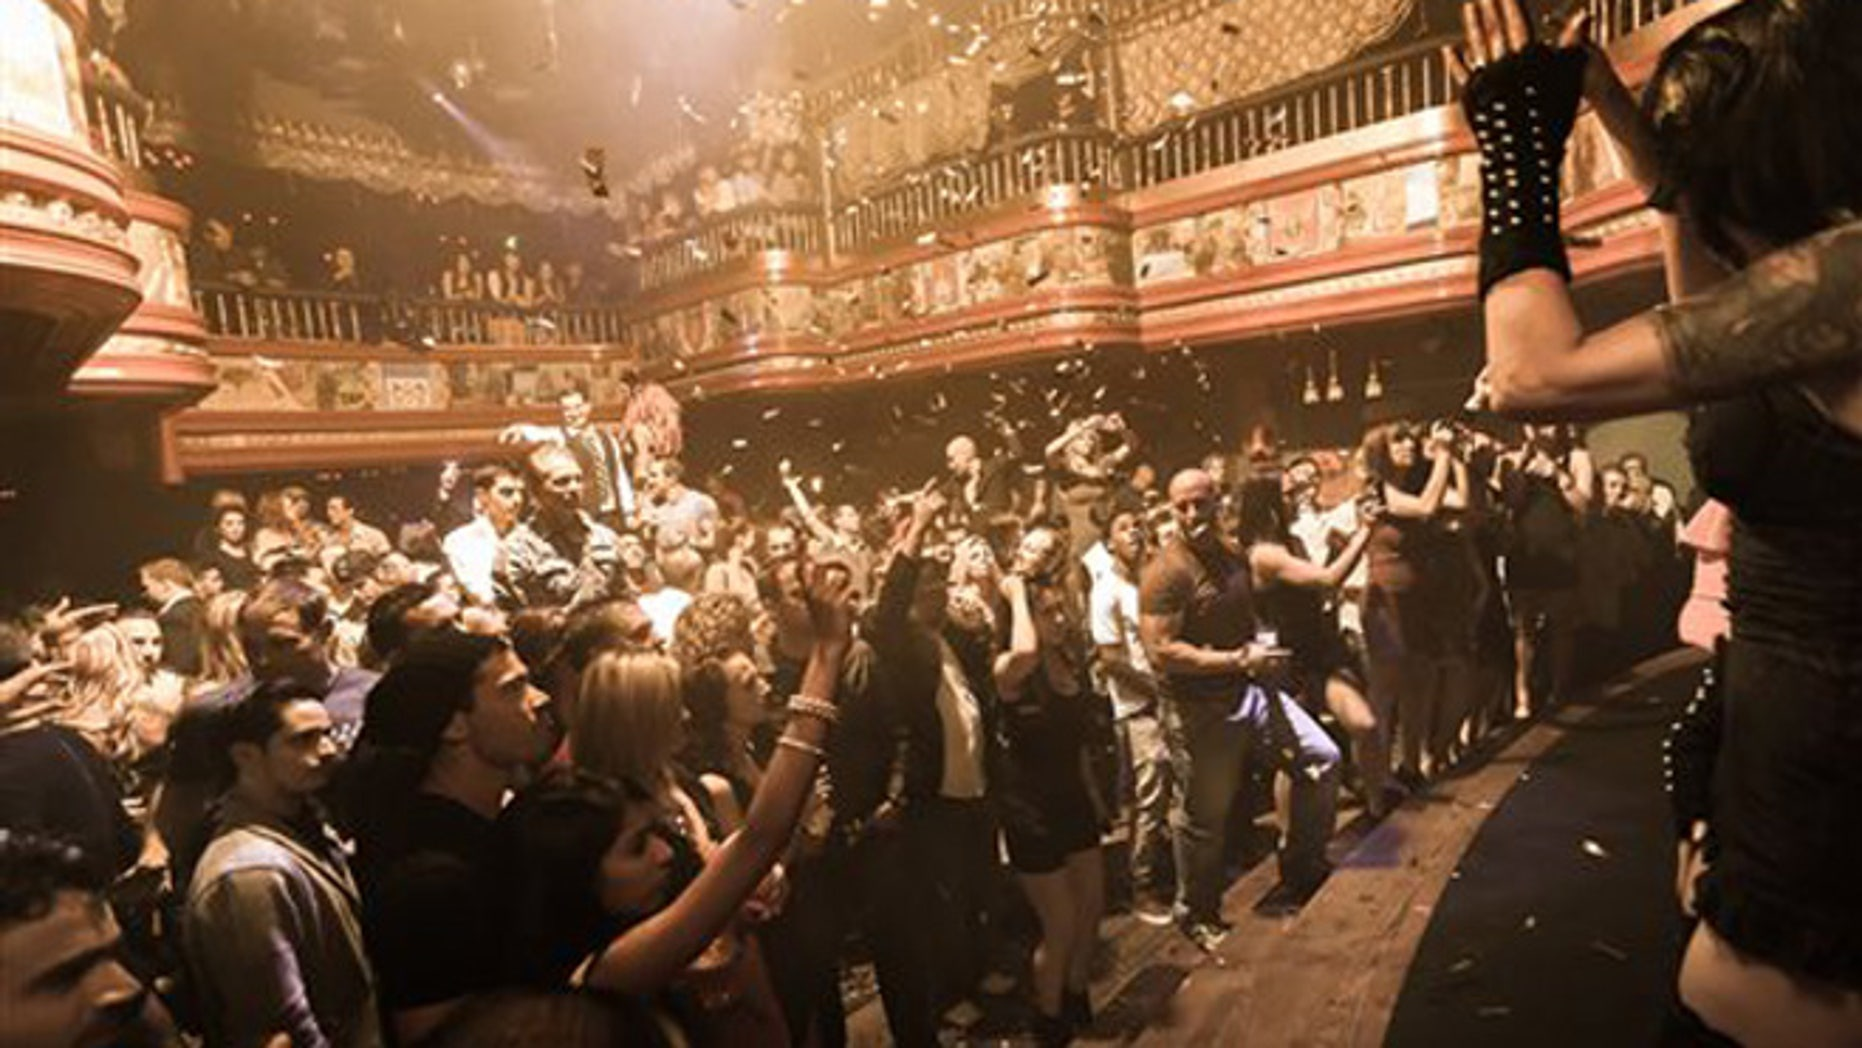 In this image provided by The Act nightclub, patrons enjoy a perfromance at  the club